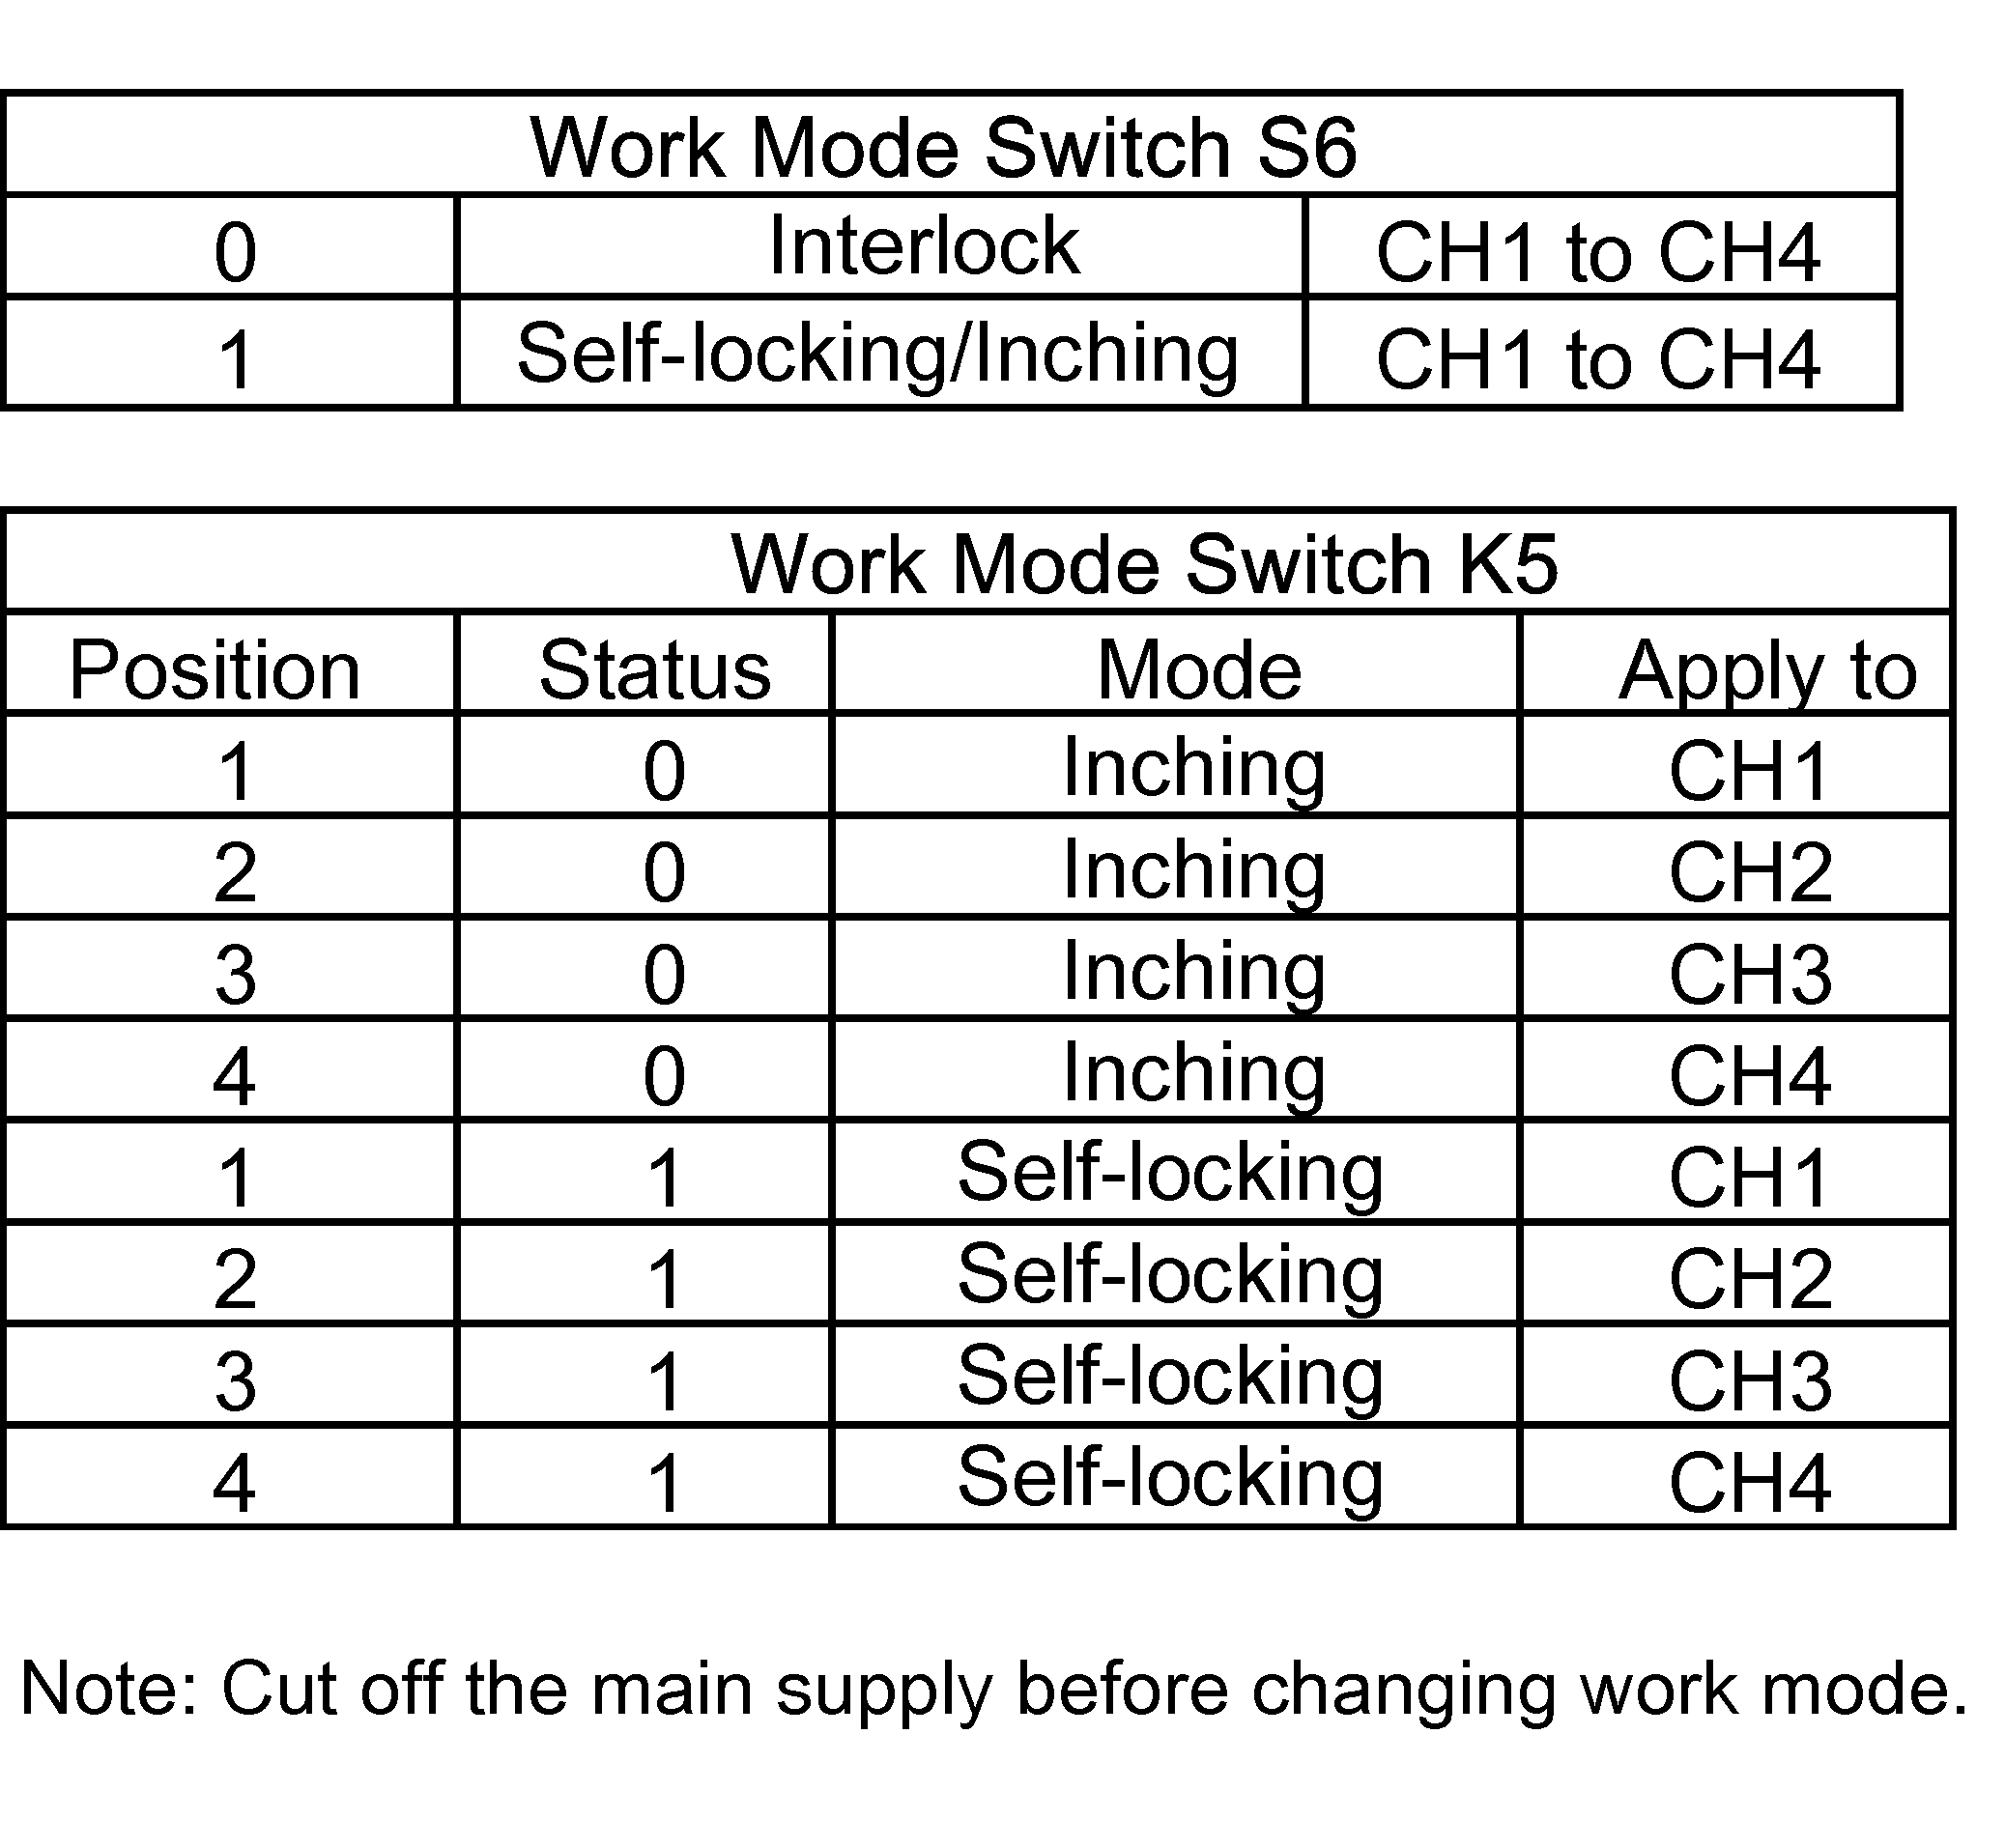 Sonoff 4ch Pro R2 User Guide Ewelink Alternating On Off Switch 1 Whether You Use Dc Or Ac Input Make Sure Have Unplugged The Power Plug Every Time Its Very Dangerous If Dont Cut Supply